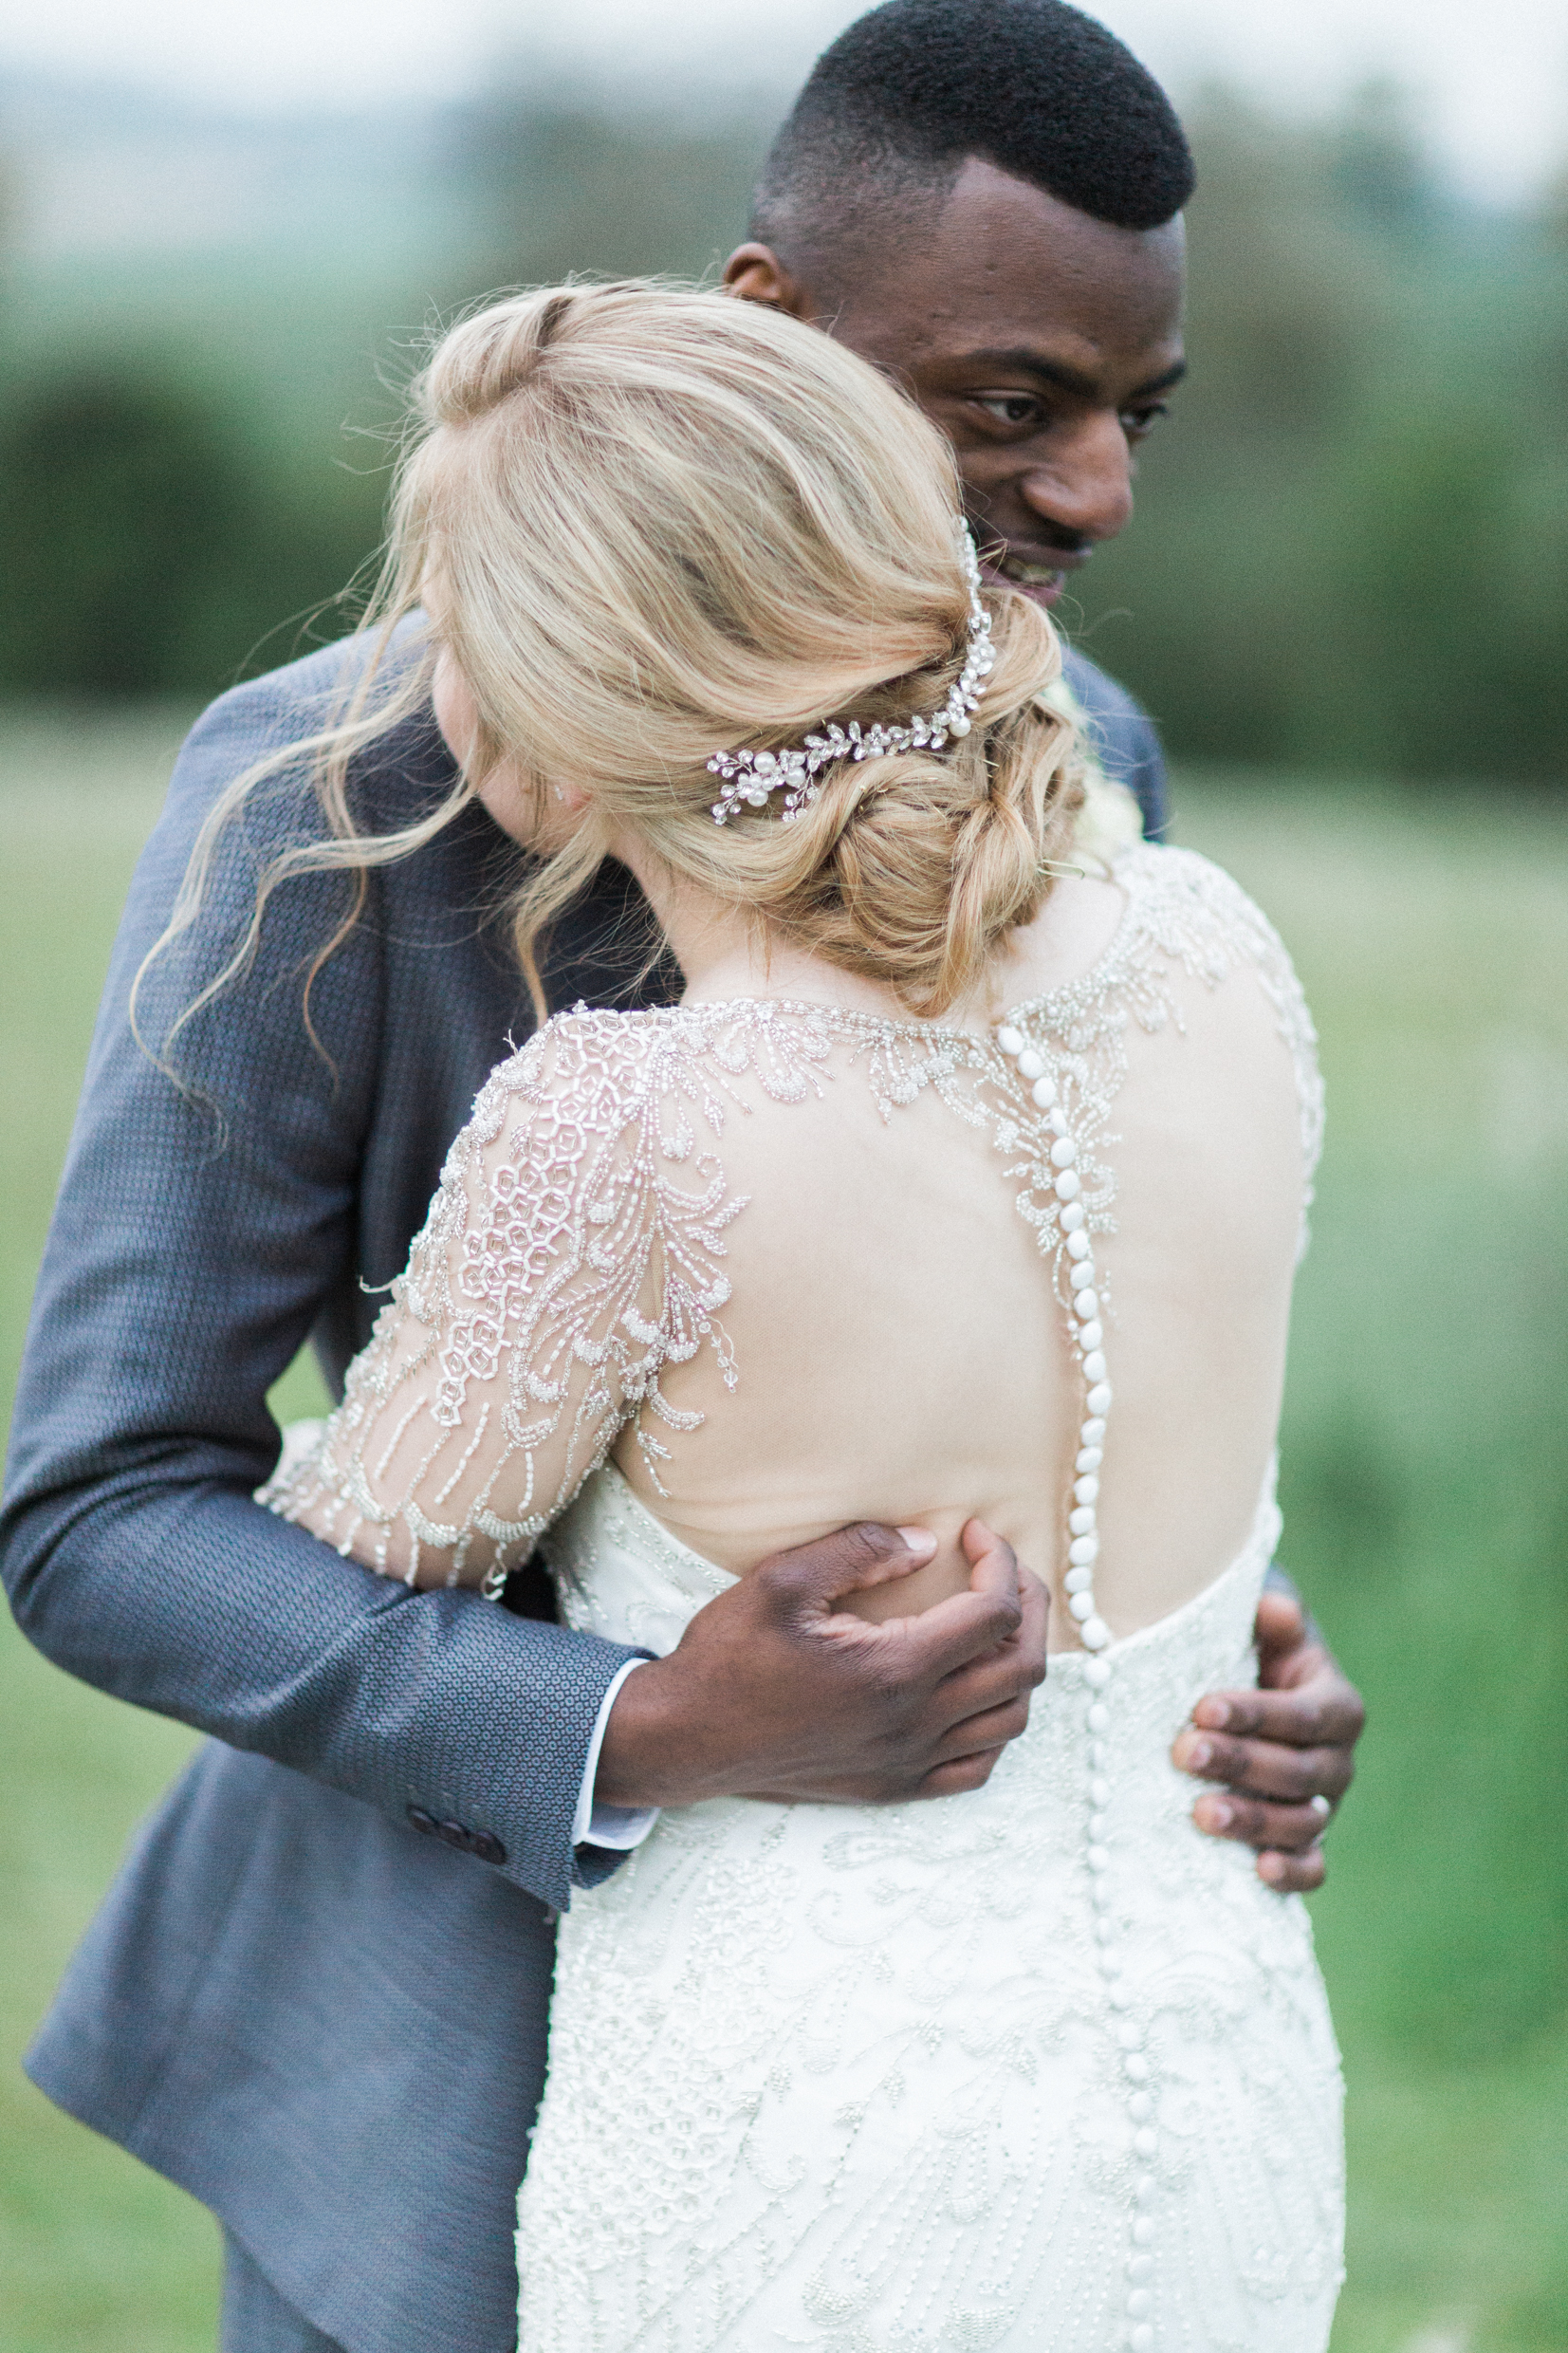 haley & jermaine-45.jpg